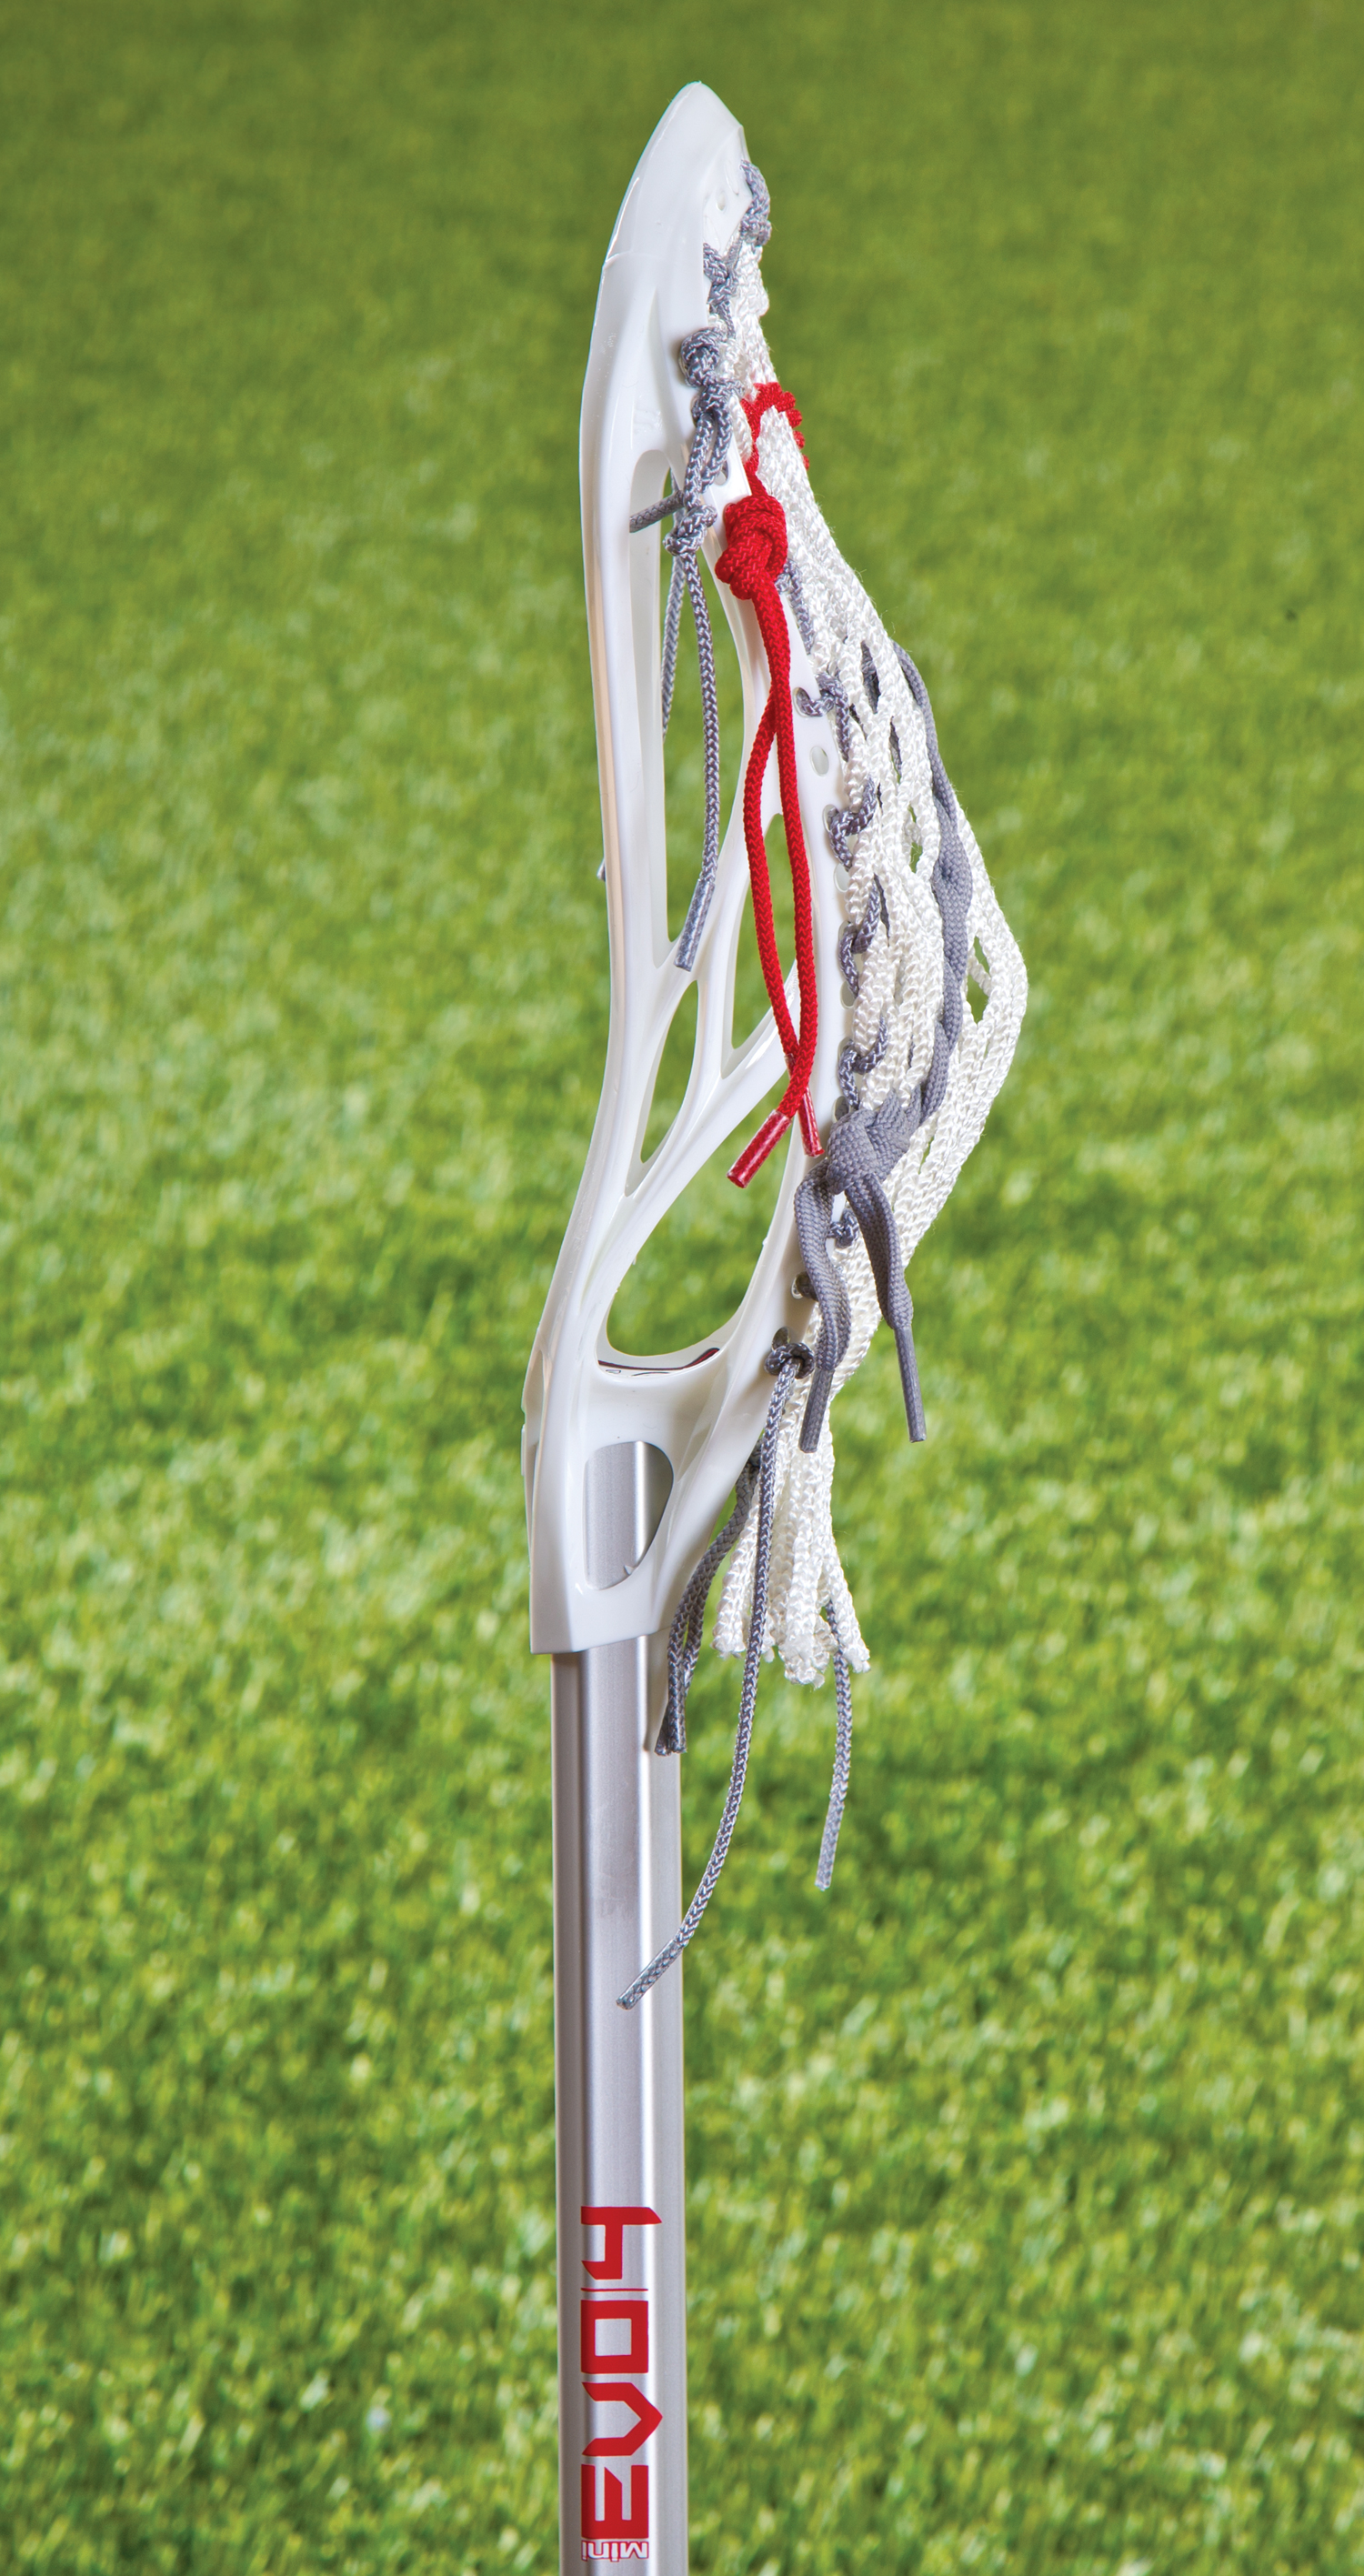 Side view of a mini lacrosse stick